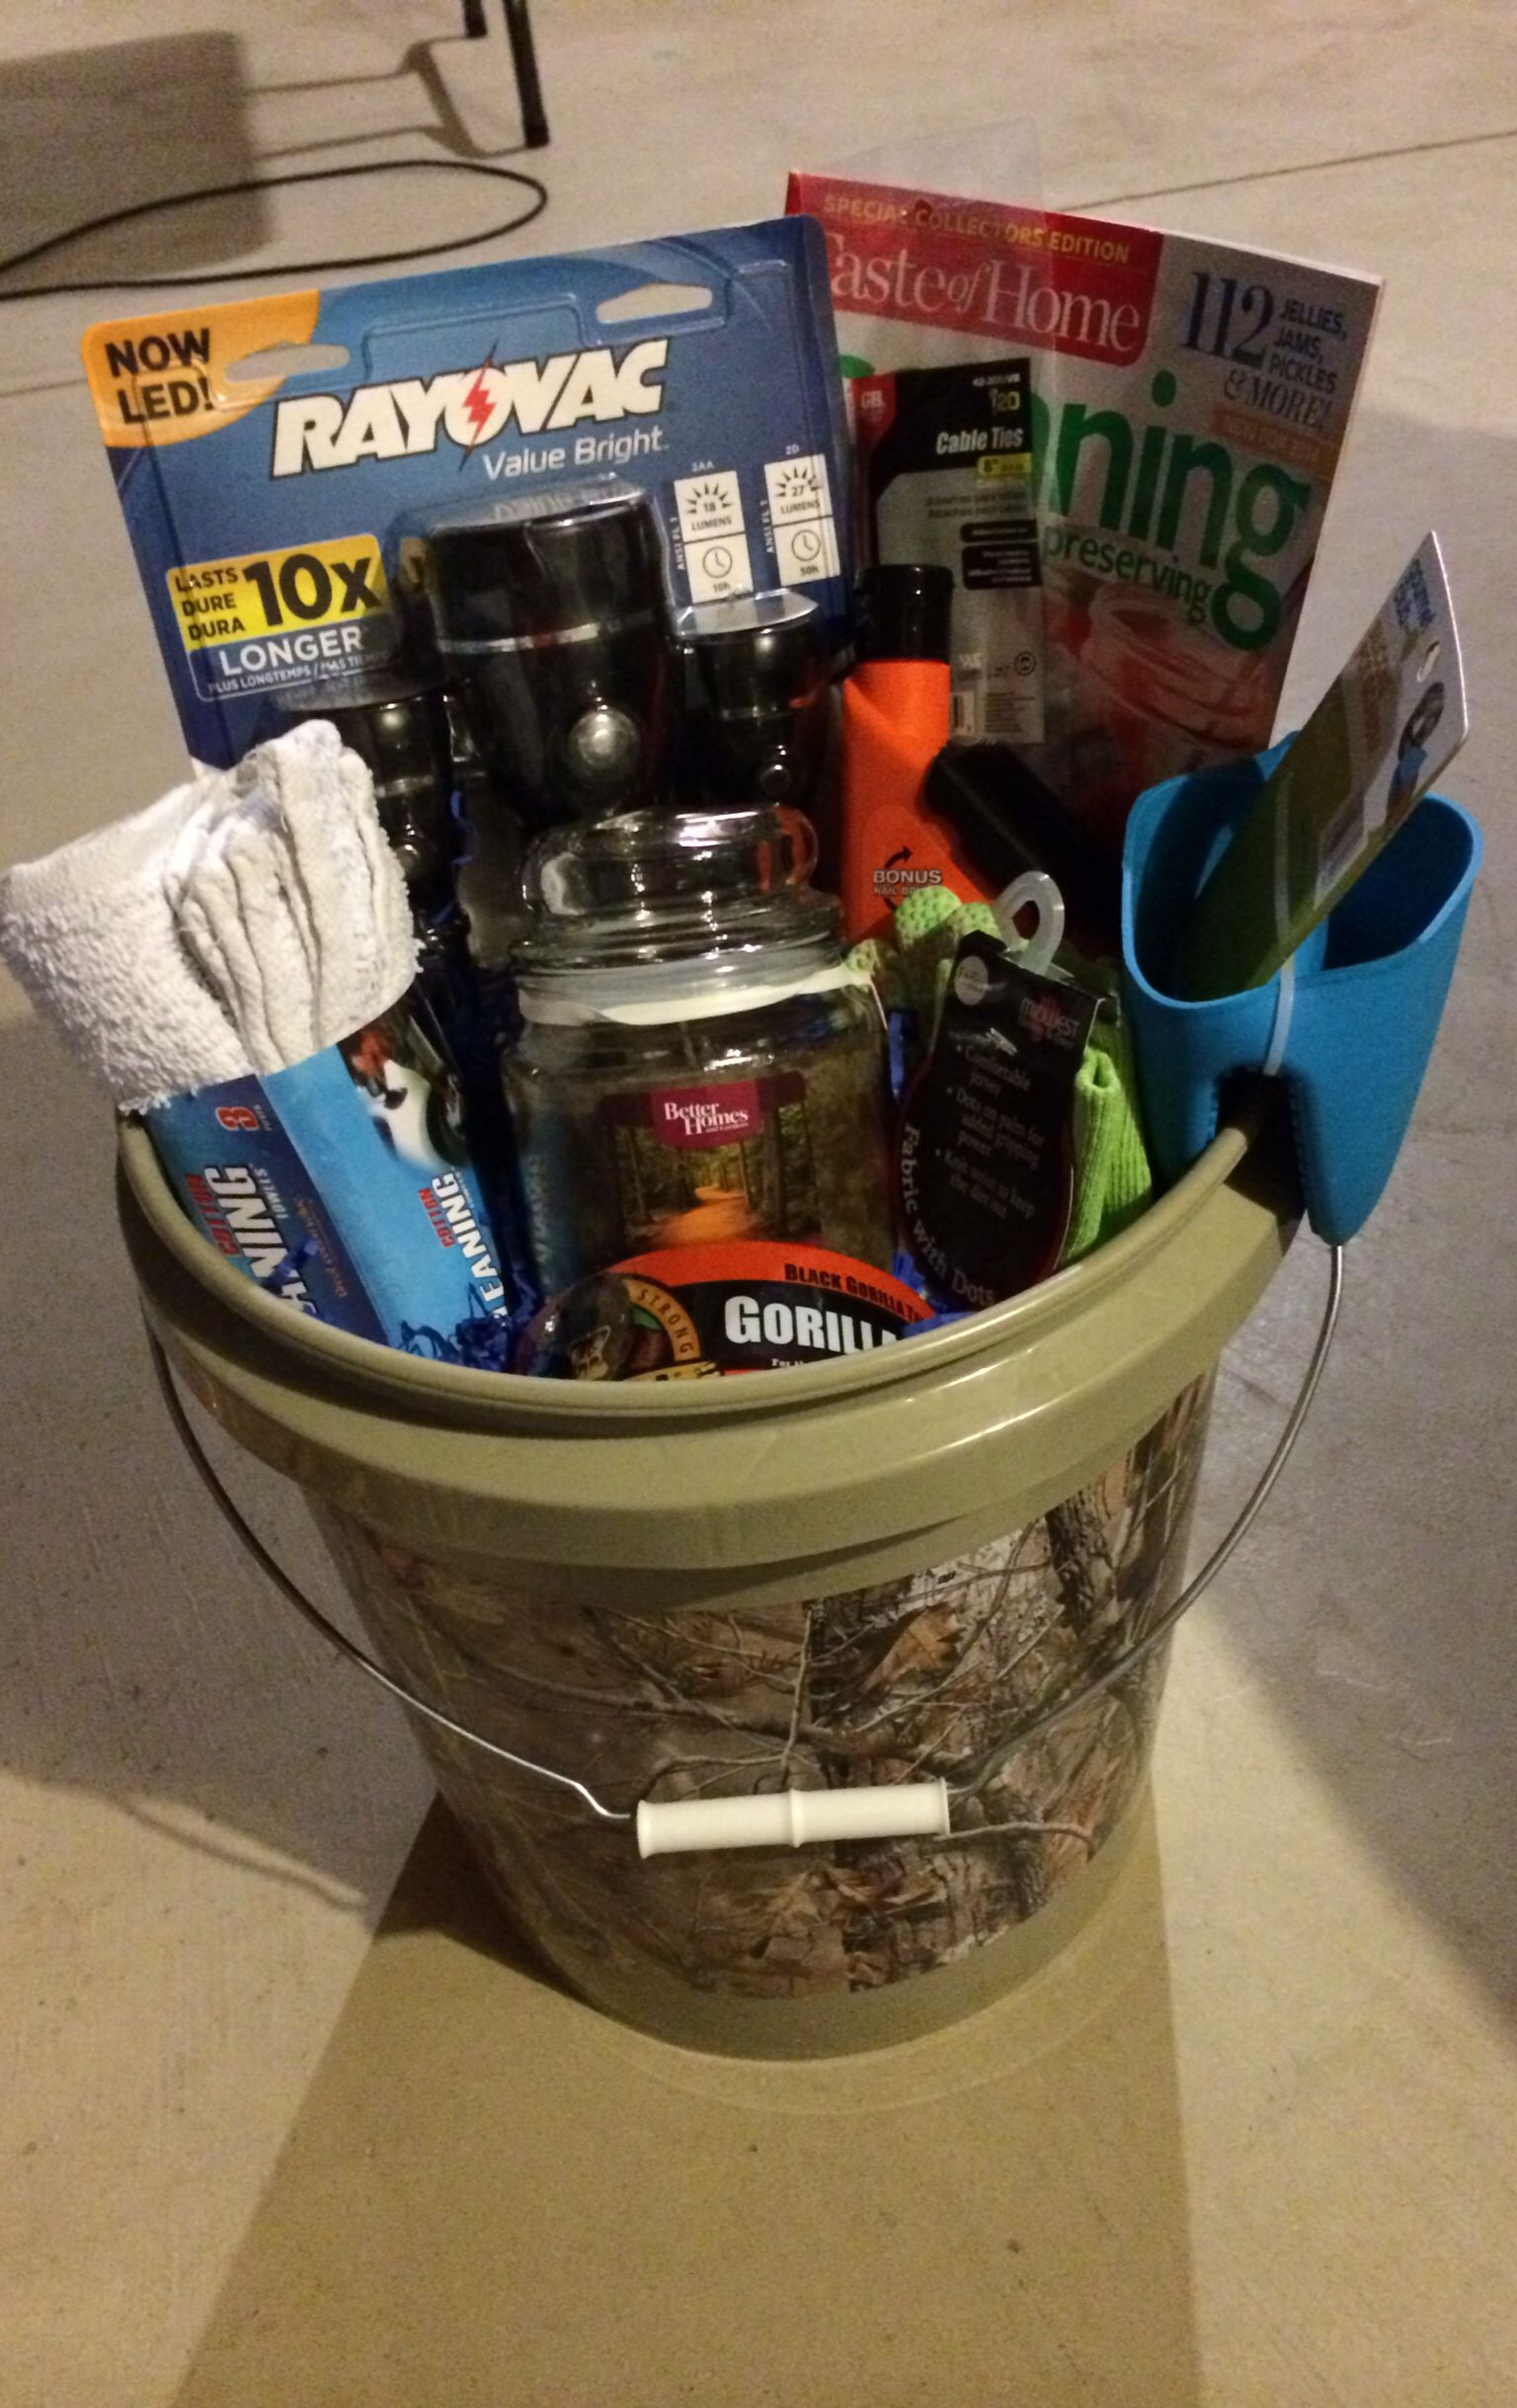 Husband and wife gift basket couple gift basketcamo gift basket husband and wife gift basket couple gift basketcamo gift basket man gift negle Image collections